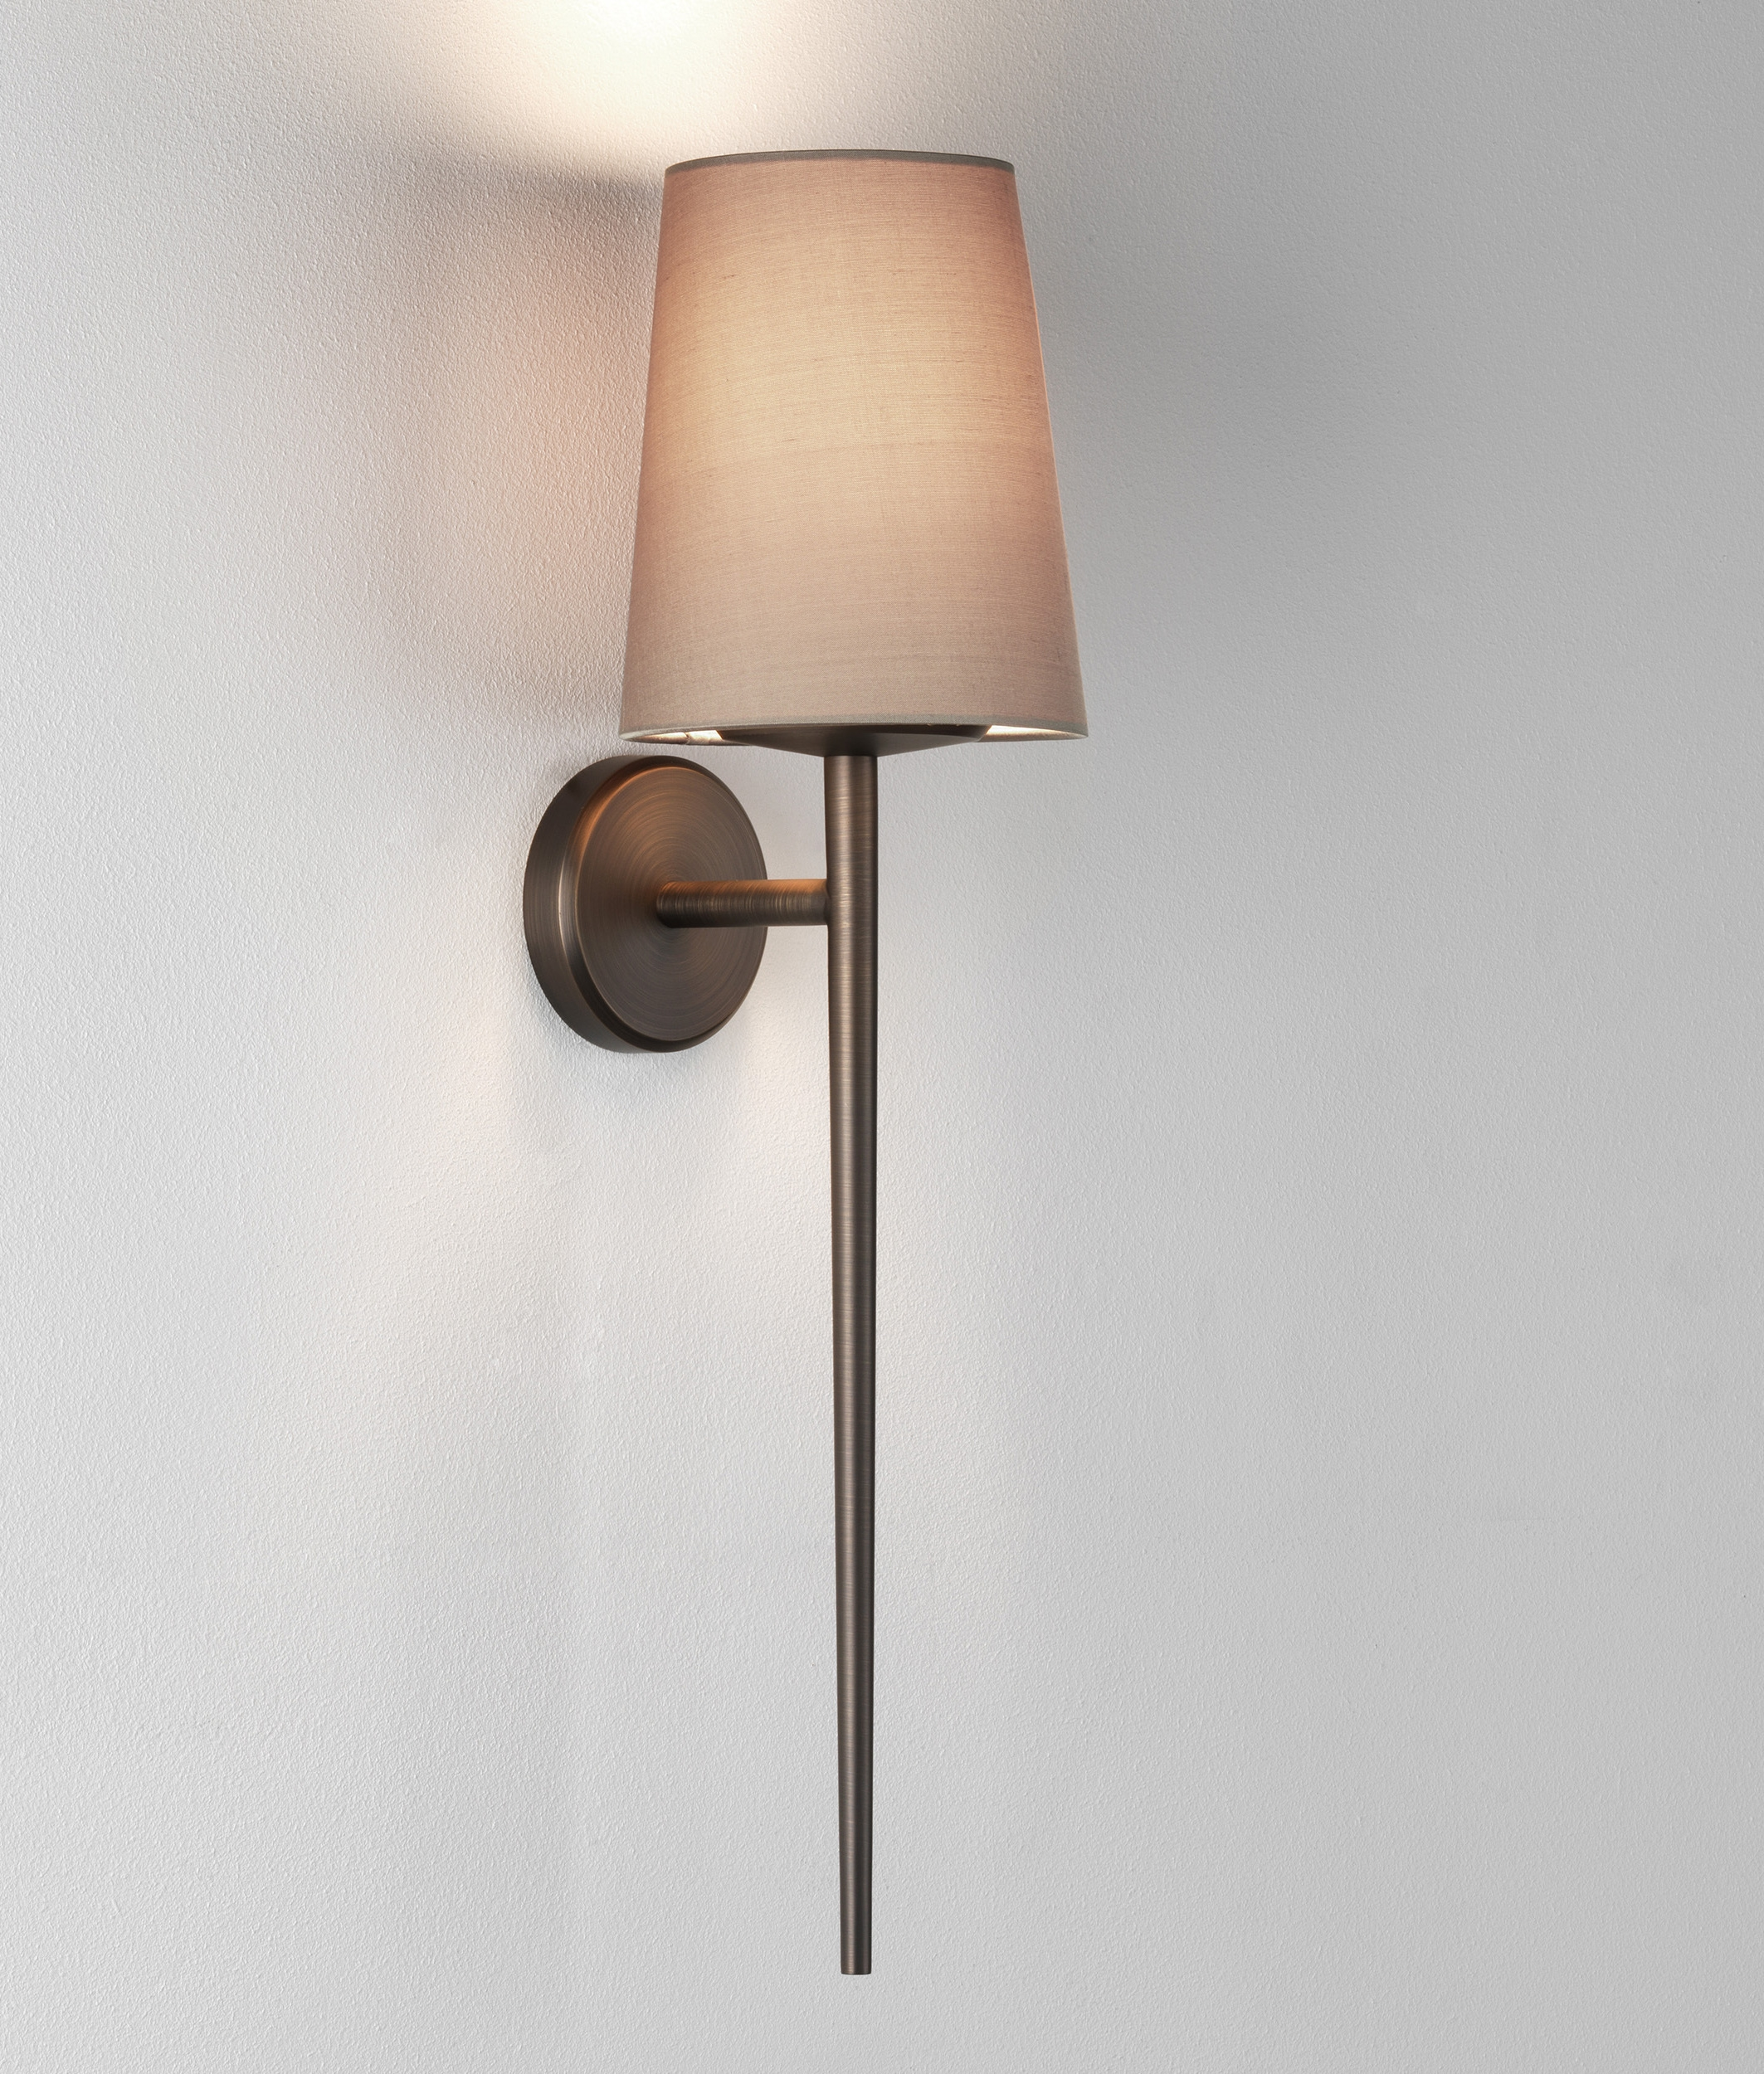 Tall Torch Style Wall Light With A Choice Of Fabric Shades